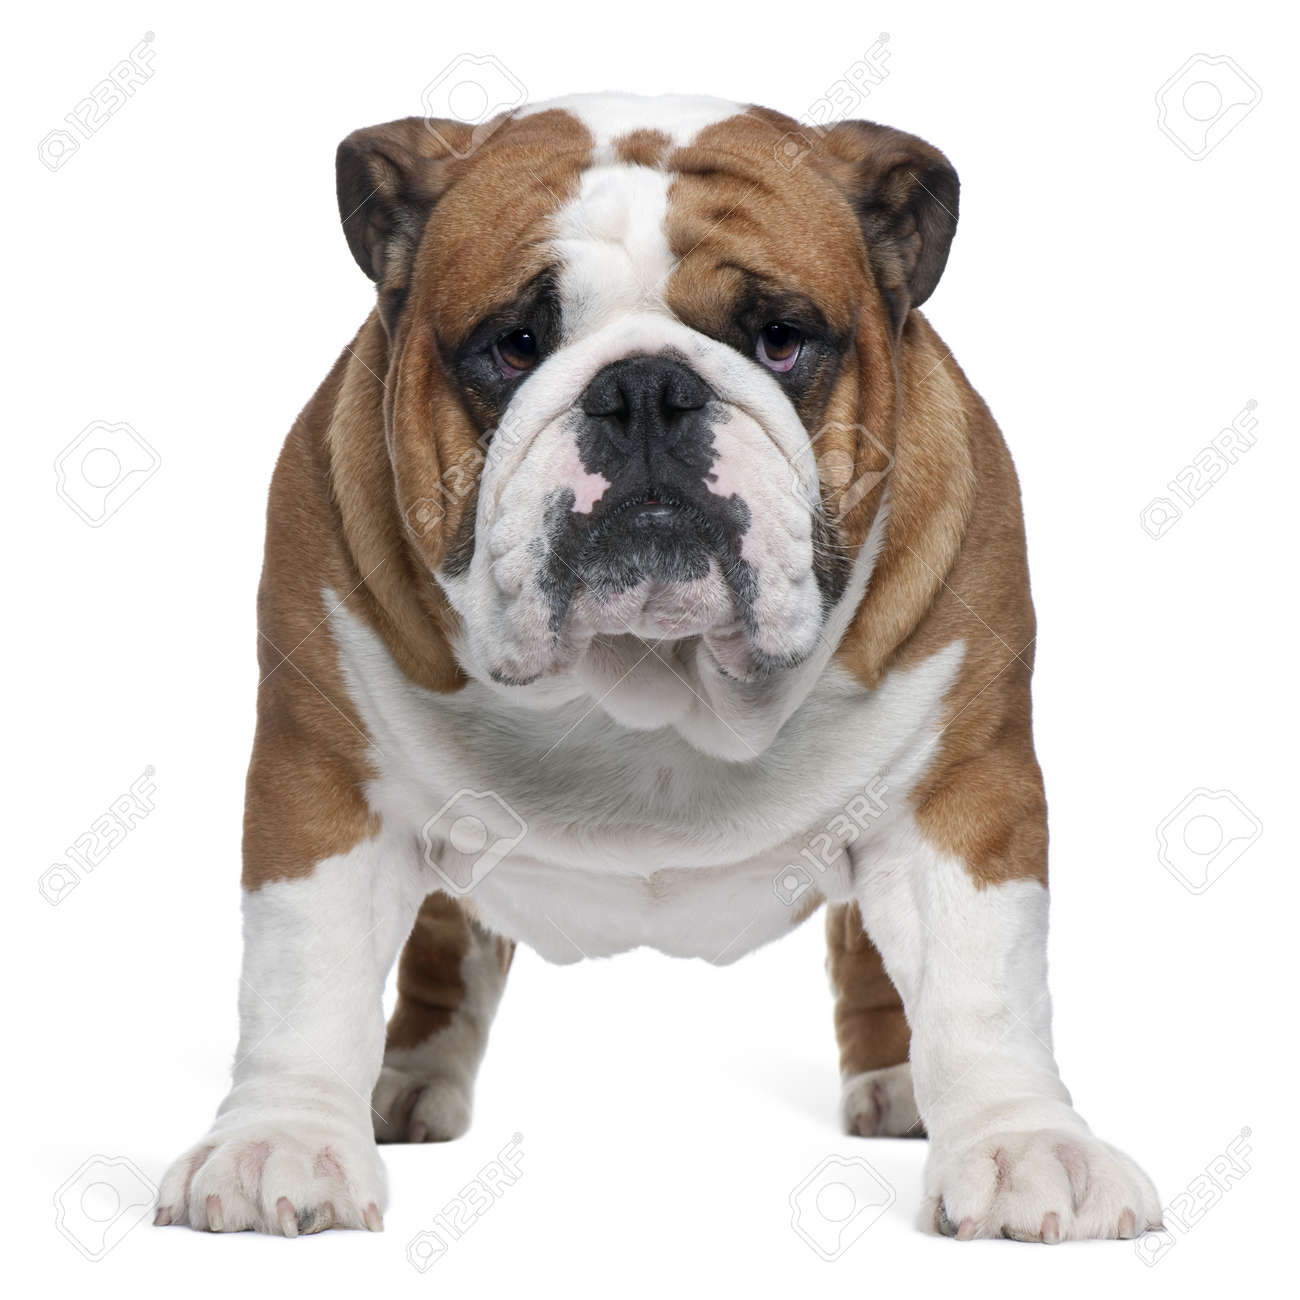 English Bulldog, 2 years old, standing in front of white background Stock Photo - 7251232